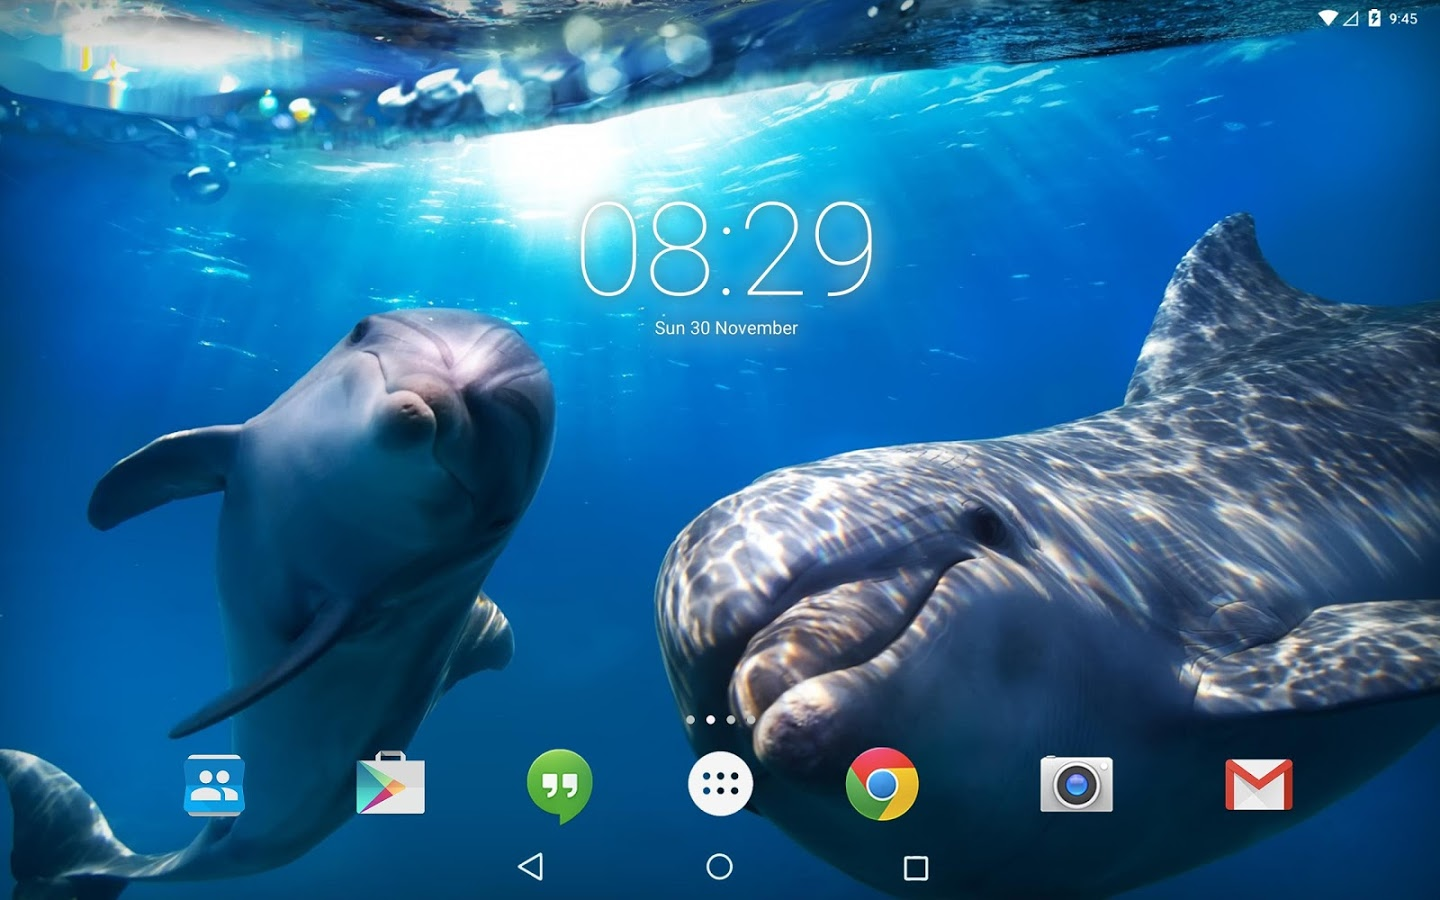 Dolphin 3d Live Wallpaper Icon Ocean Dolphins Live Wallpaper 187 Apk Thing Android Apps